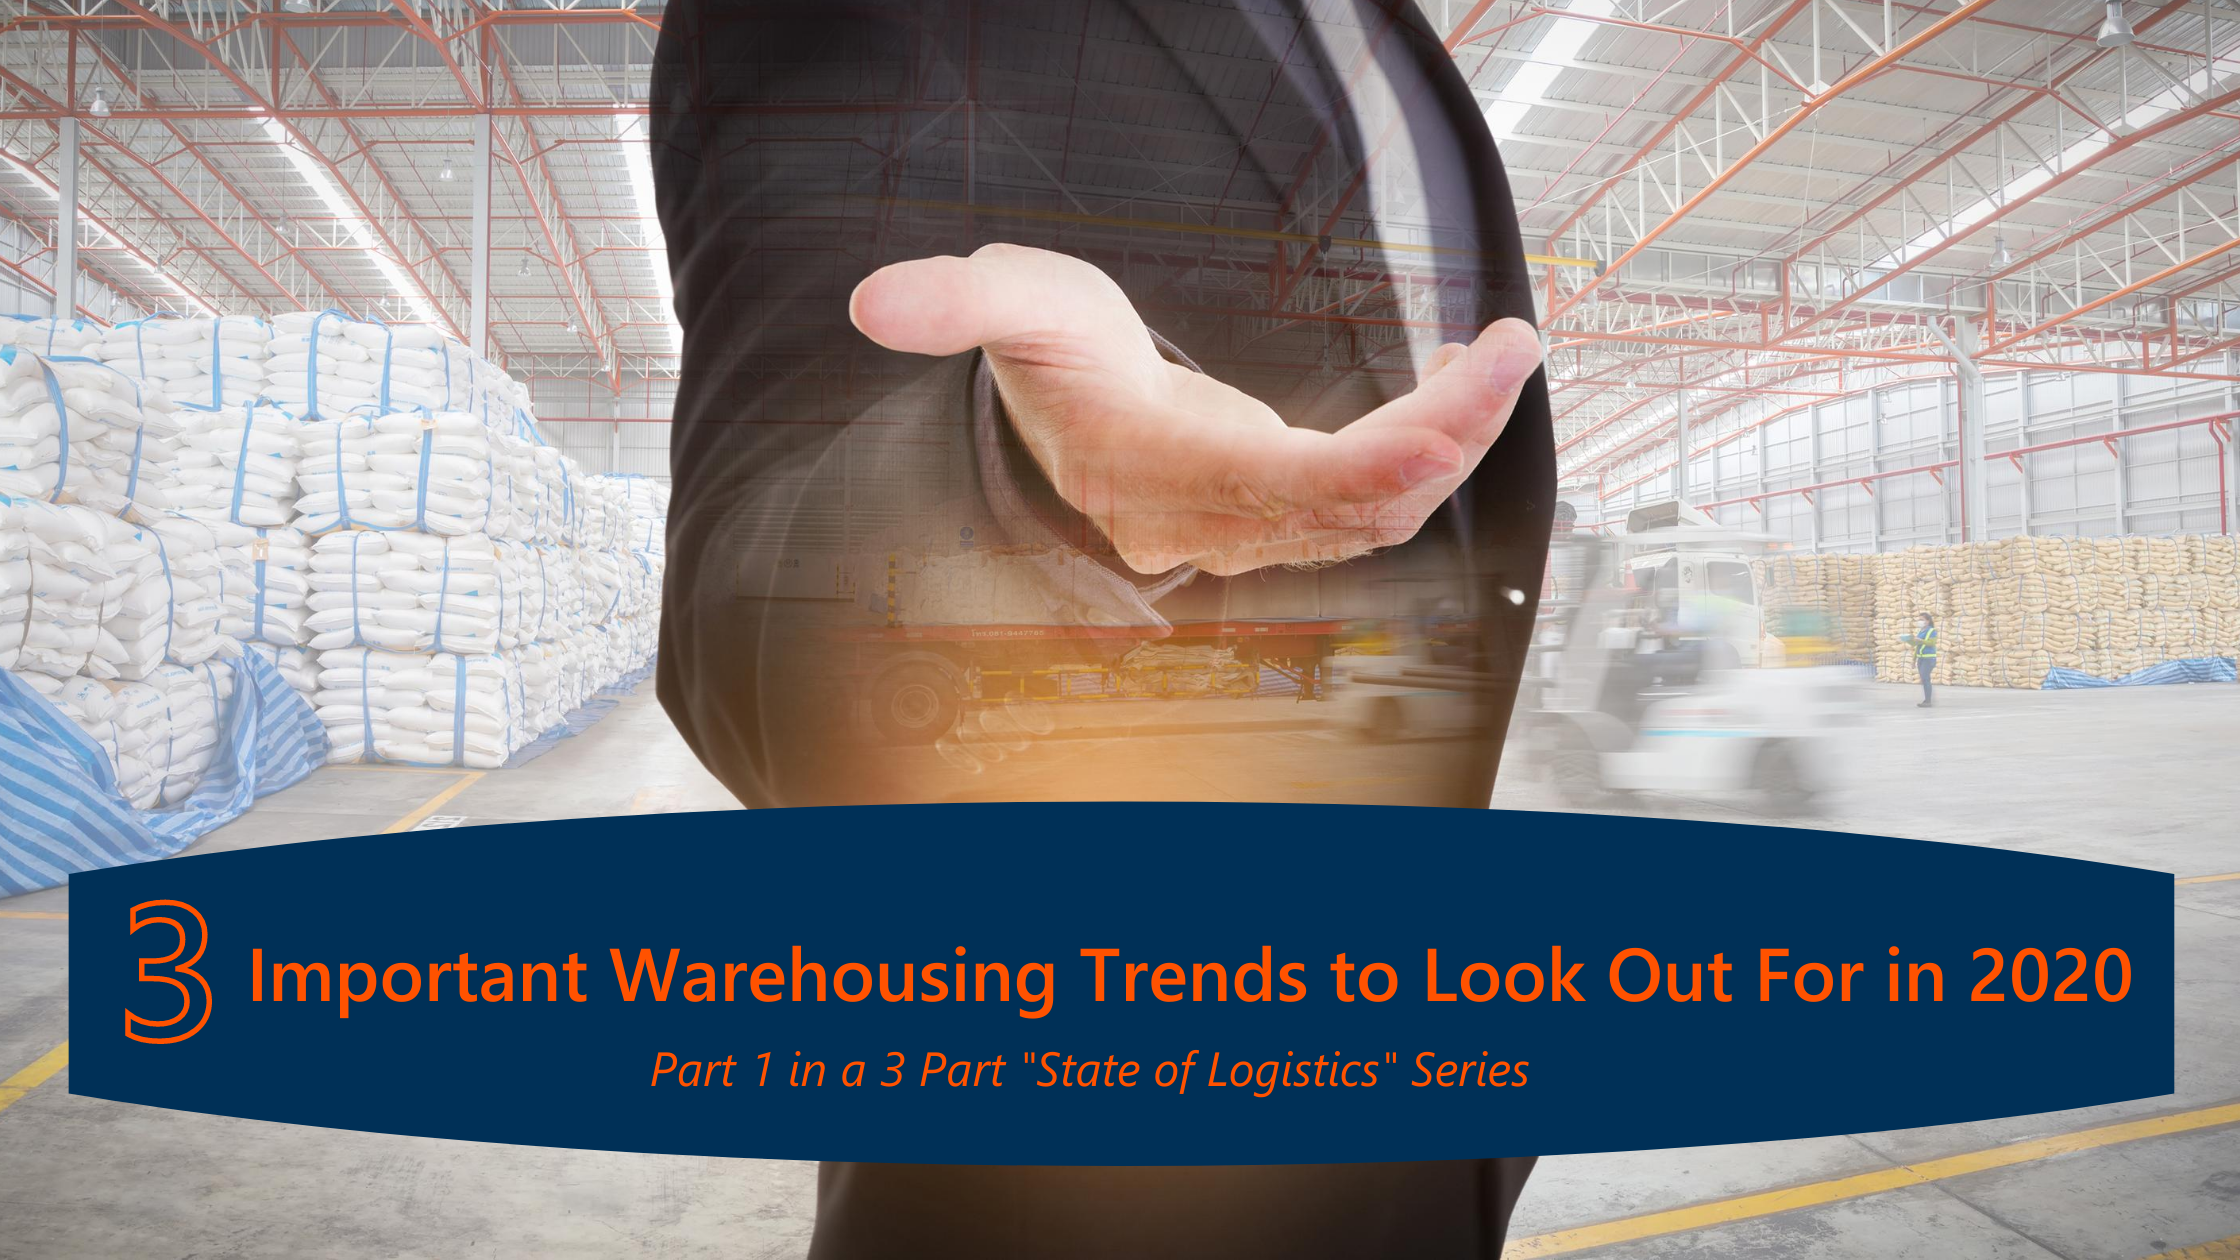 3-important-warehousing-trends-to-look-out-for-in-2020-text-over-man-in-suit-with-hand-reaching-out-warehouse-in-background